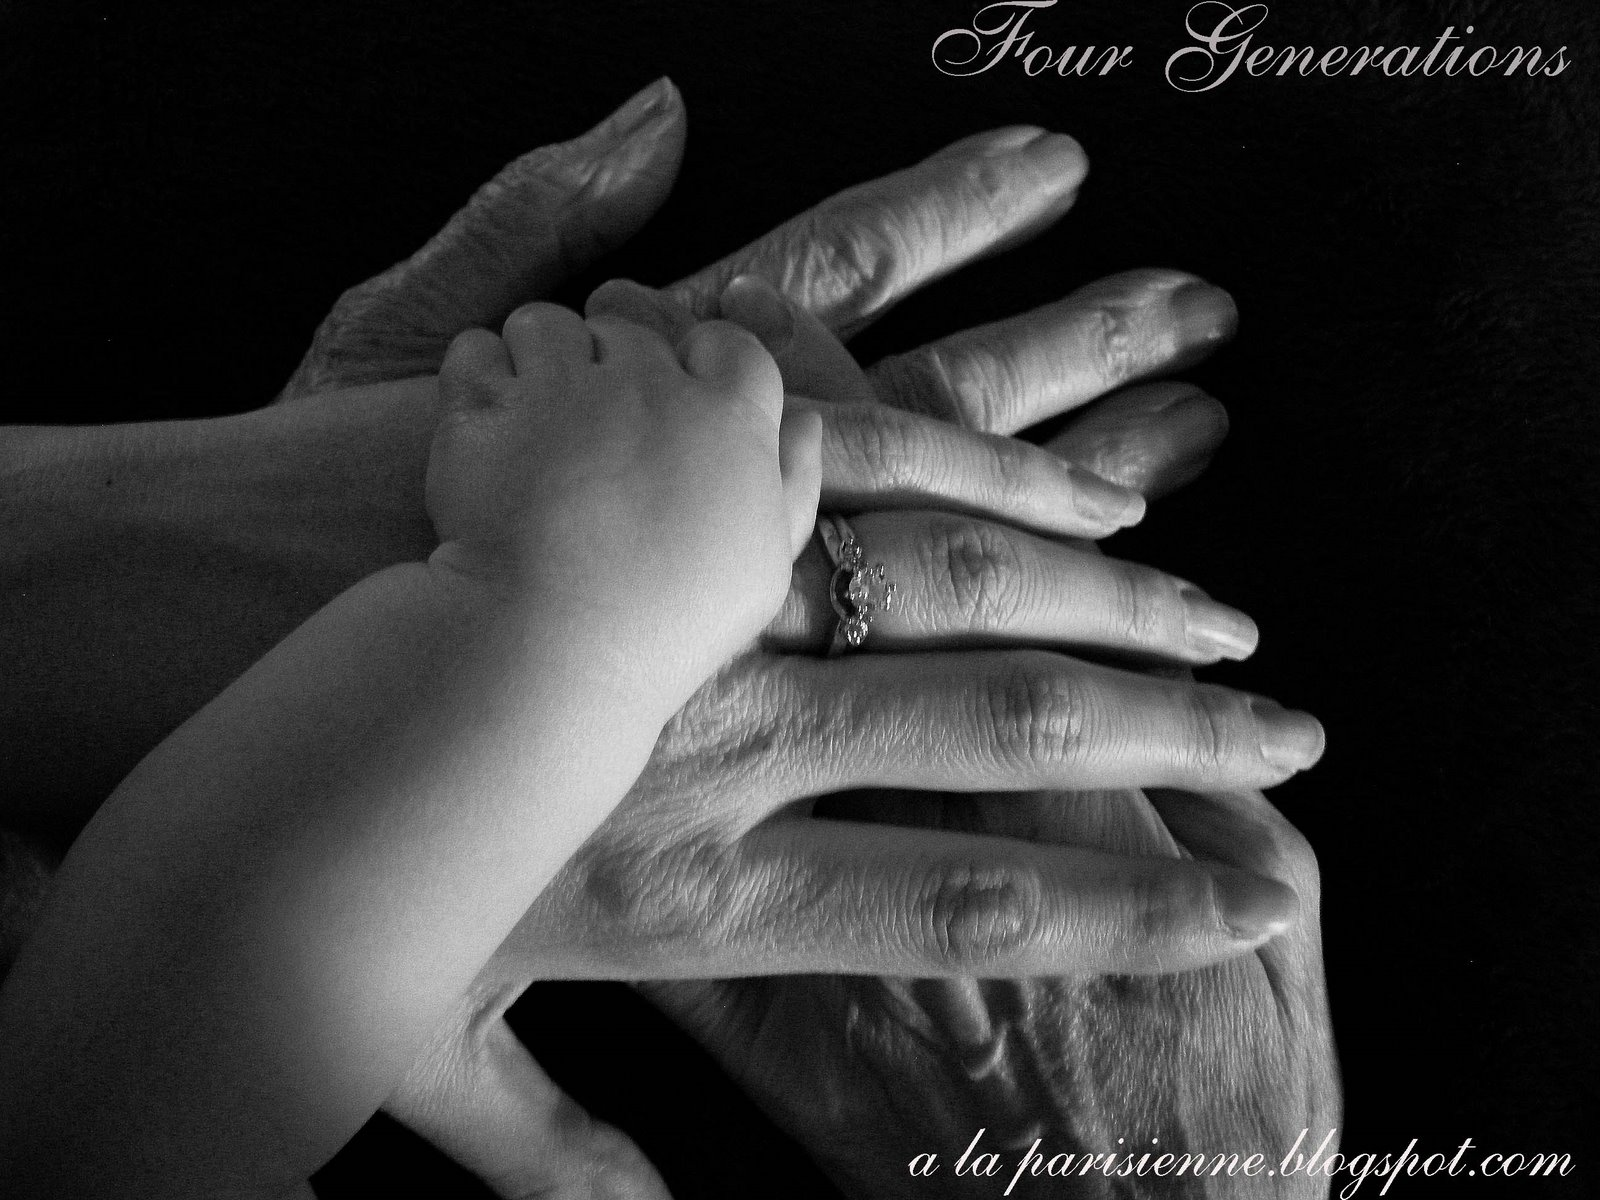 Four Generations-Honoring Grandma